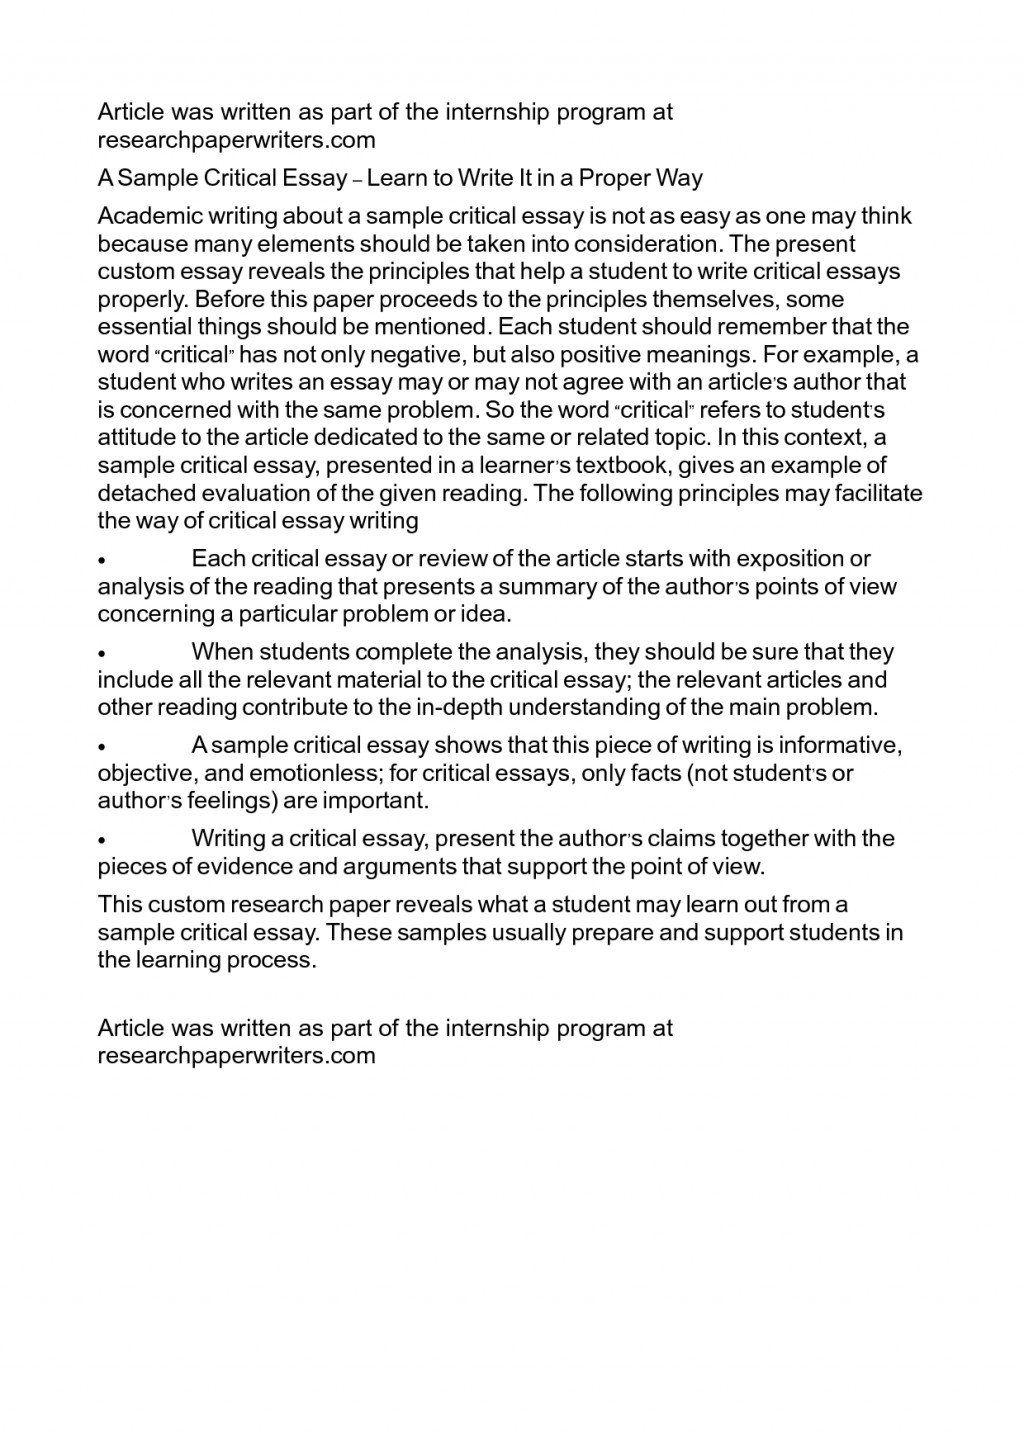 006 Essay Example How To Write Proper Frightening A Good Format Successful Introduction Large